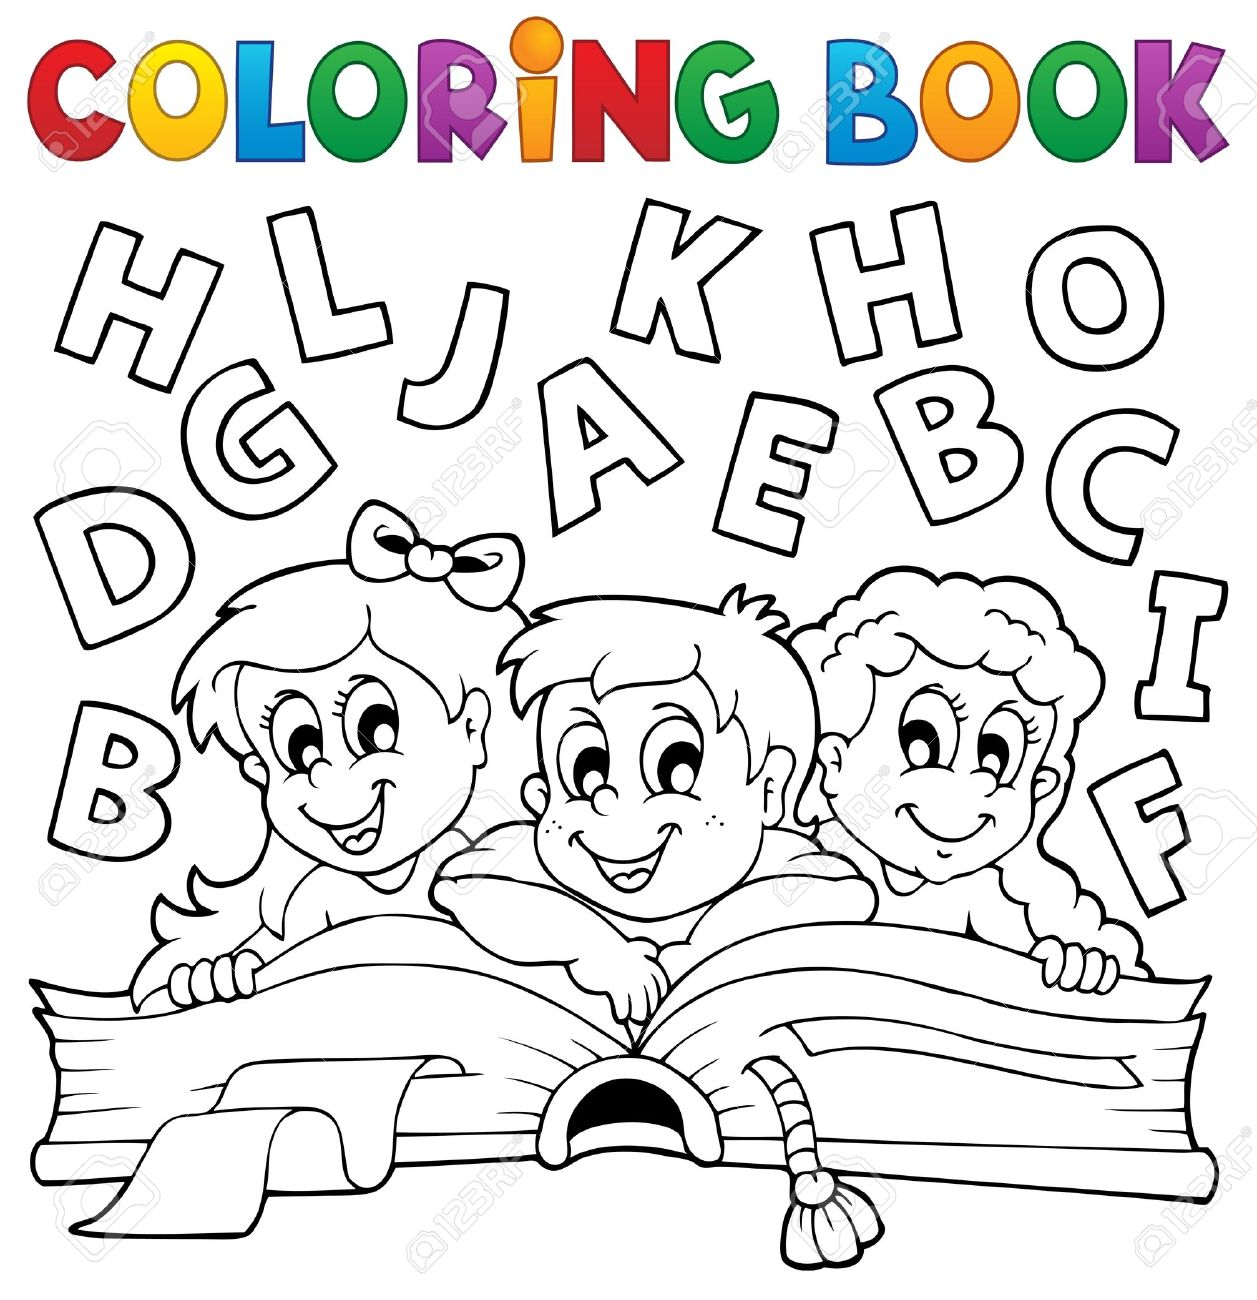 Childrens online colouring book - Coloring Book Kids Theme 5 Eps10 Vector Illustration Stock Vector 21571122